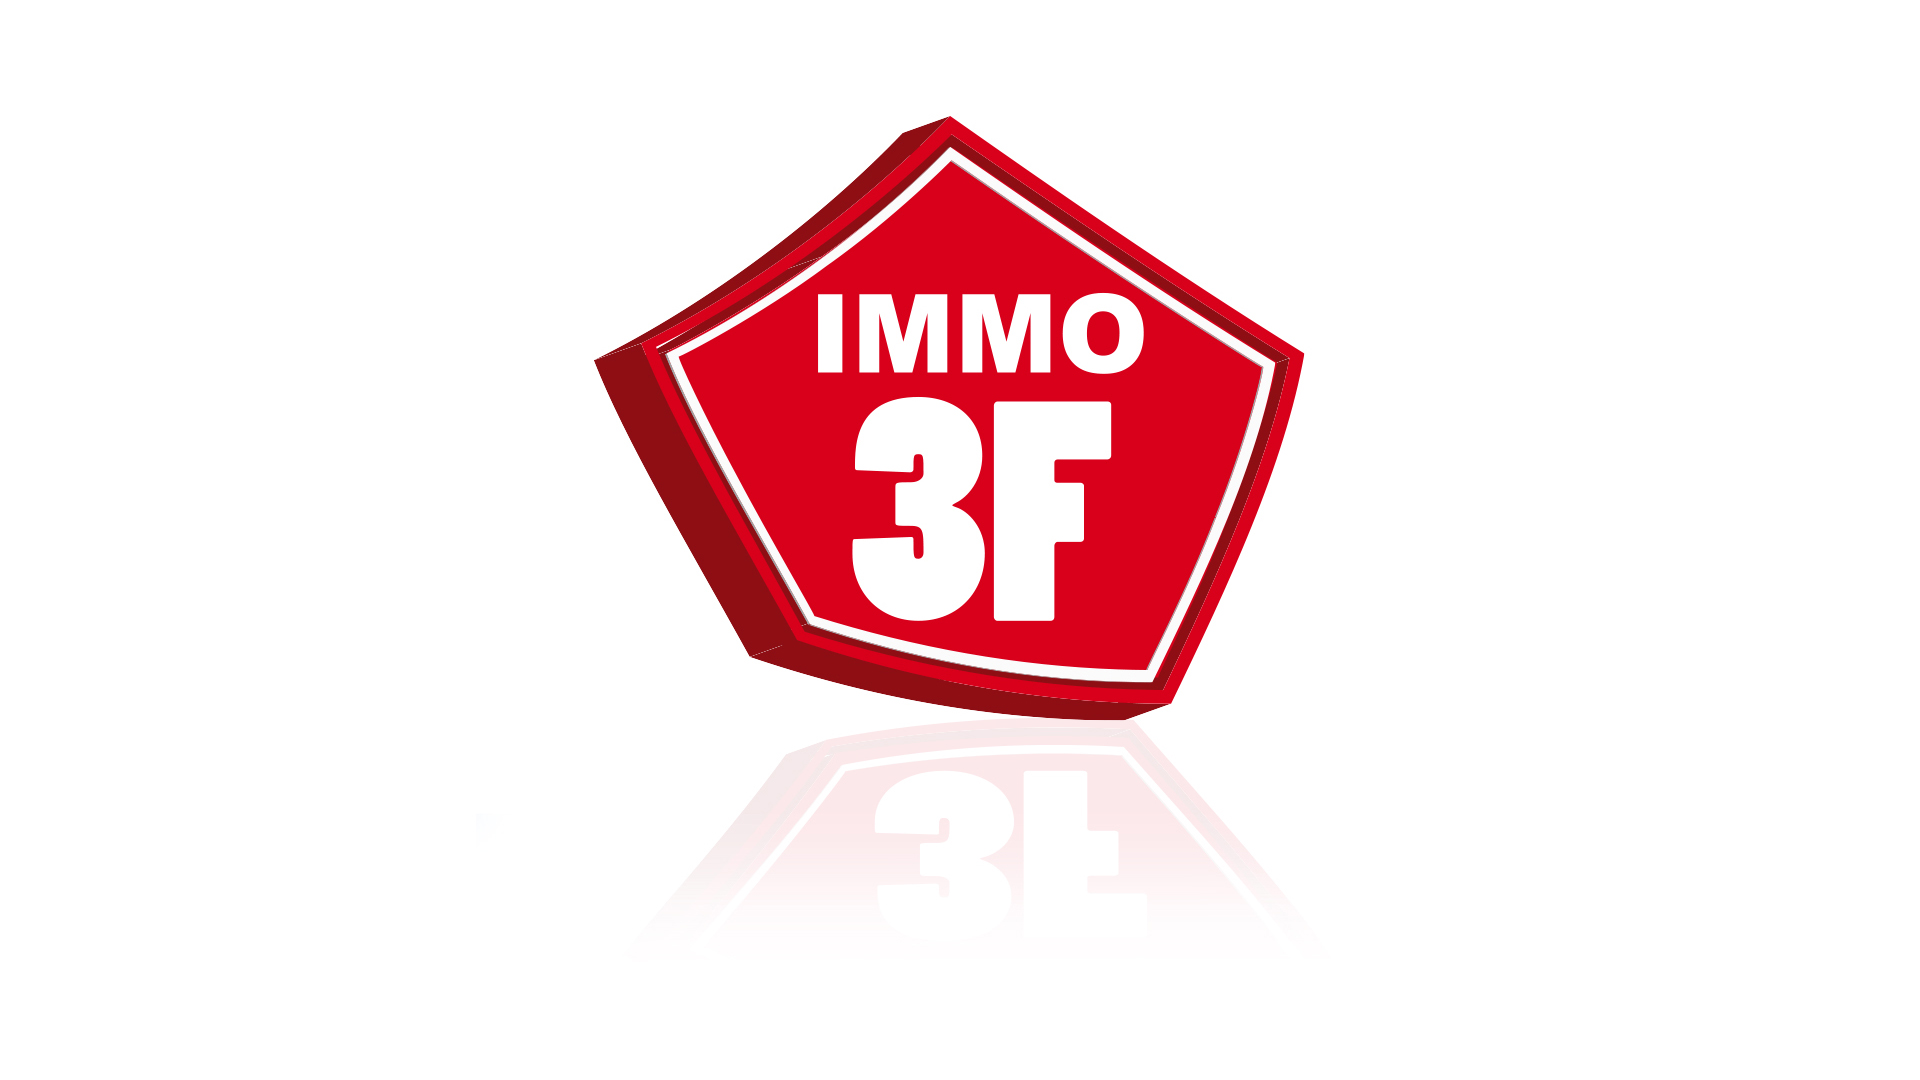 communication Agence immobilière - Immobilier : Refonte du logo Immo3F